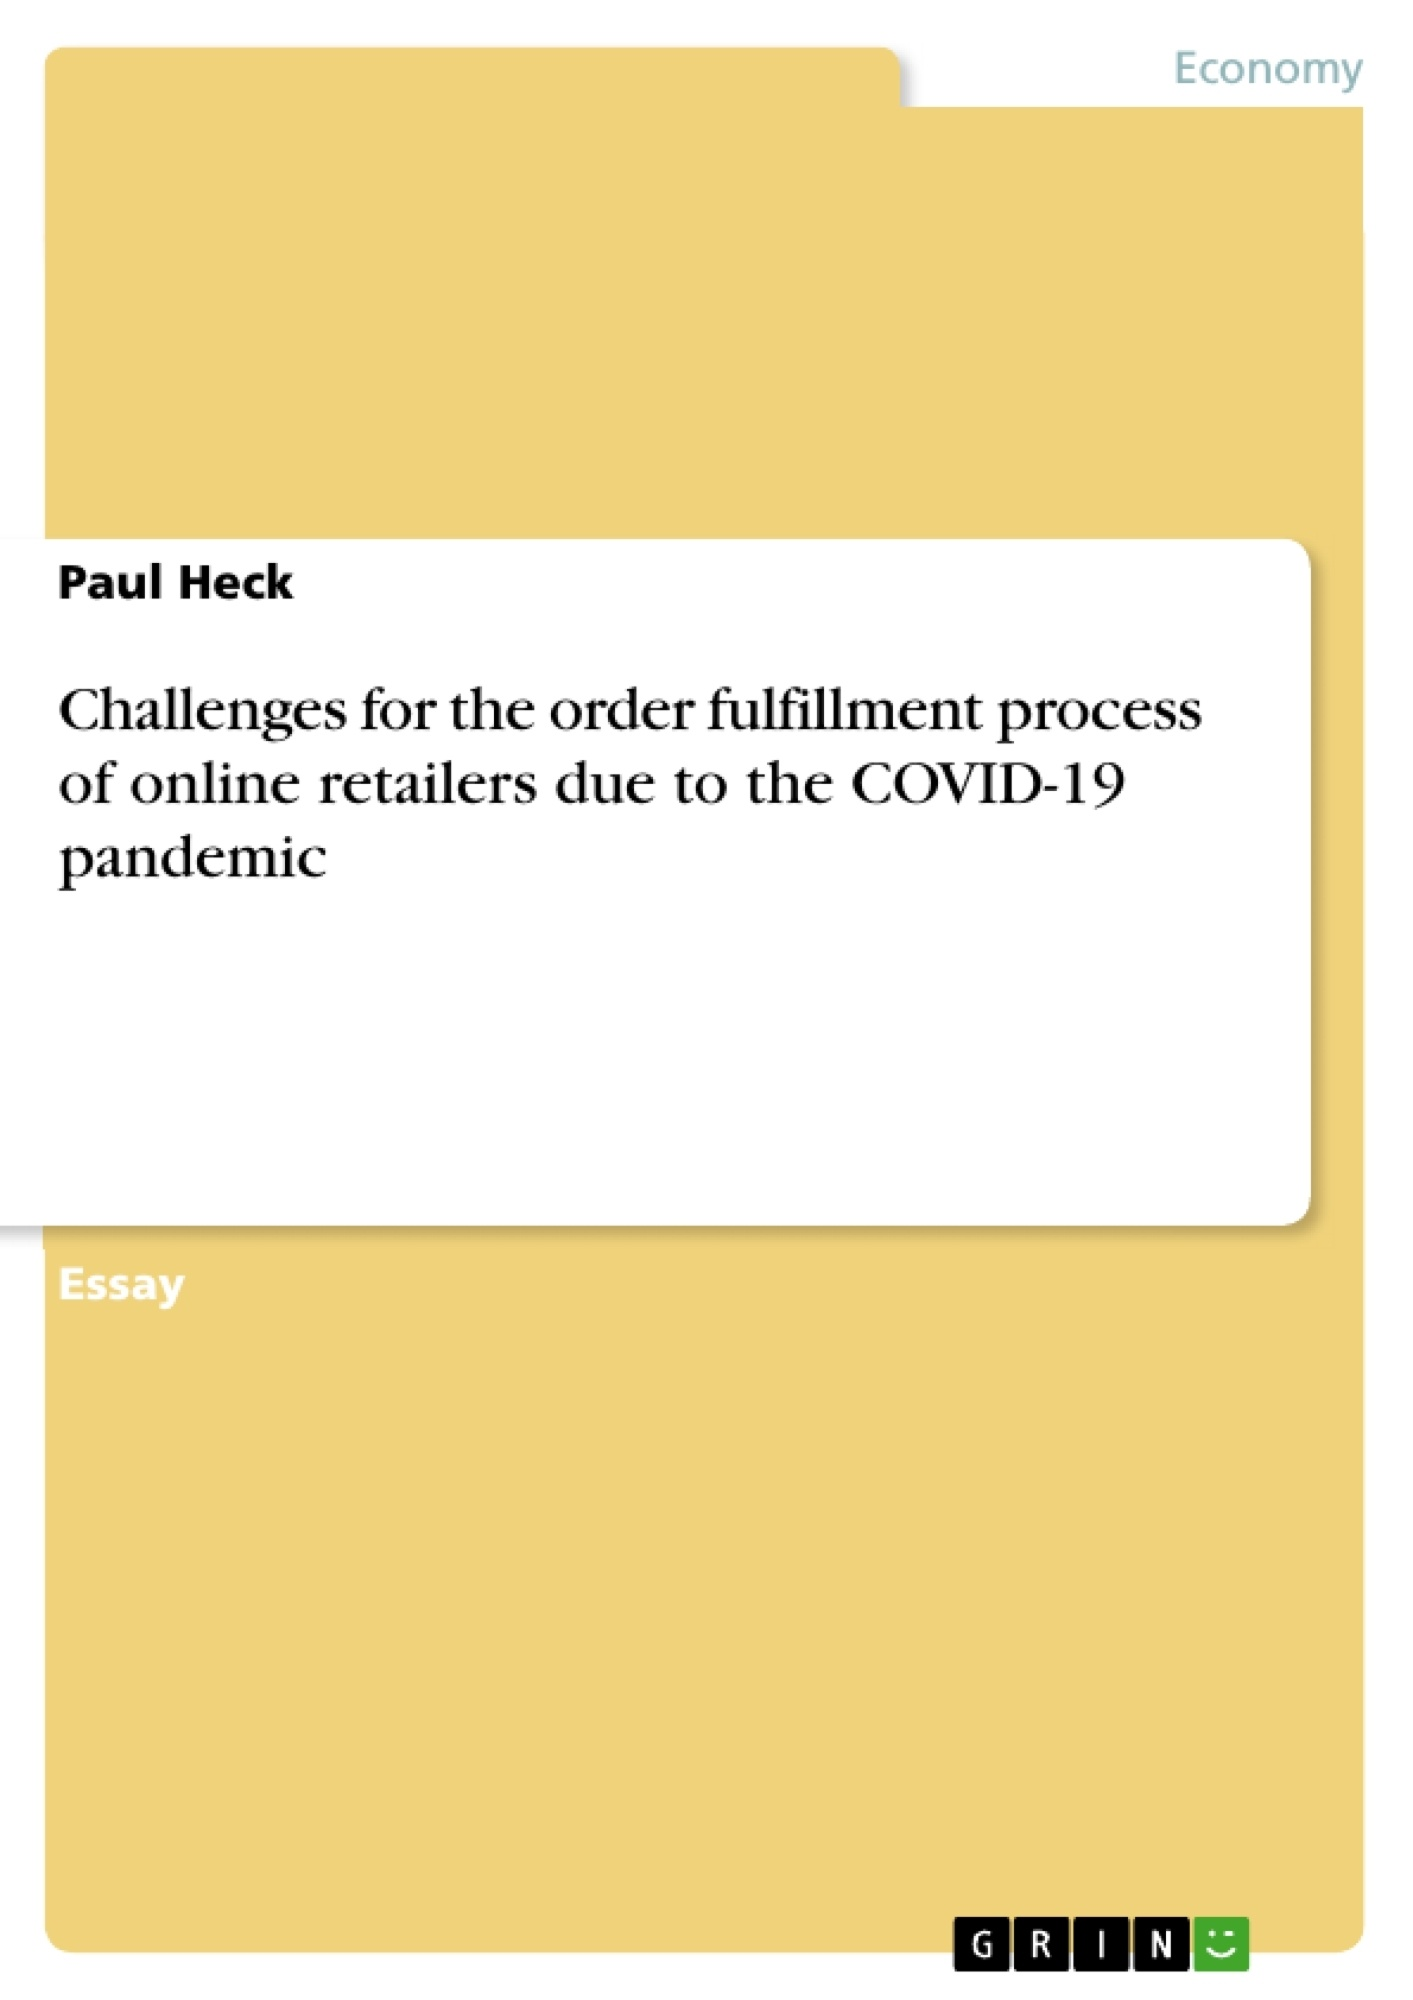 Title: Challenges for the order fulfillment process of online retailers due to the COVID-19 pandemic